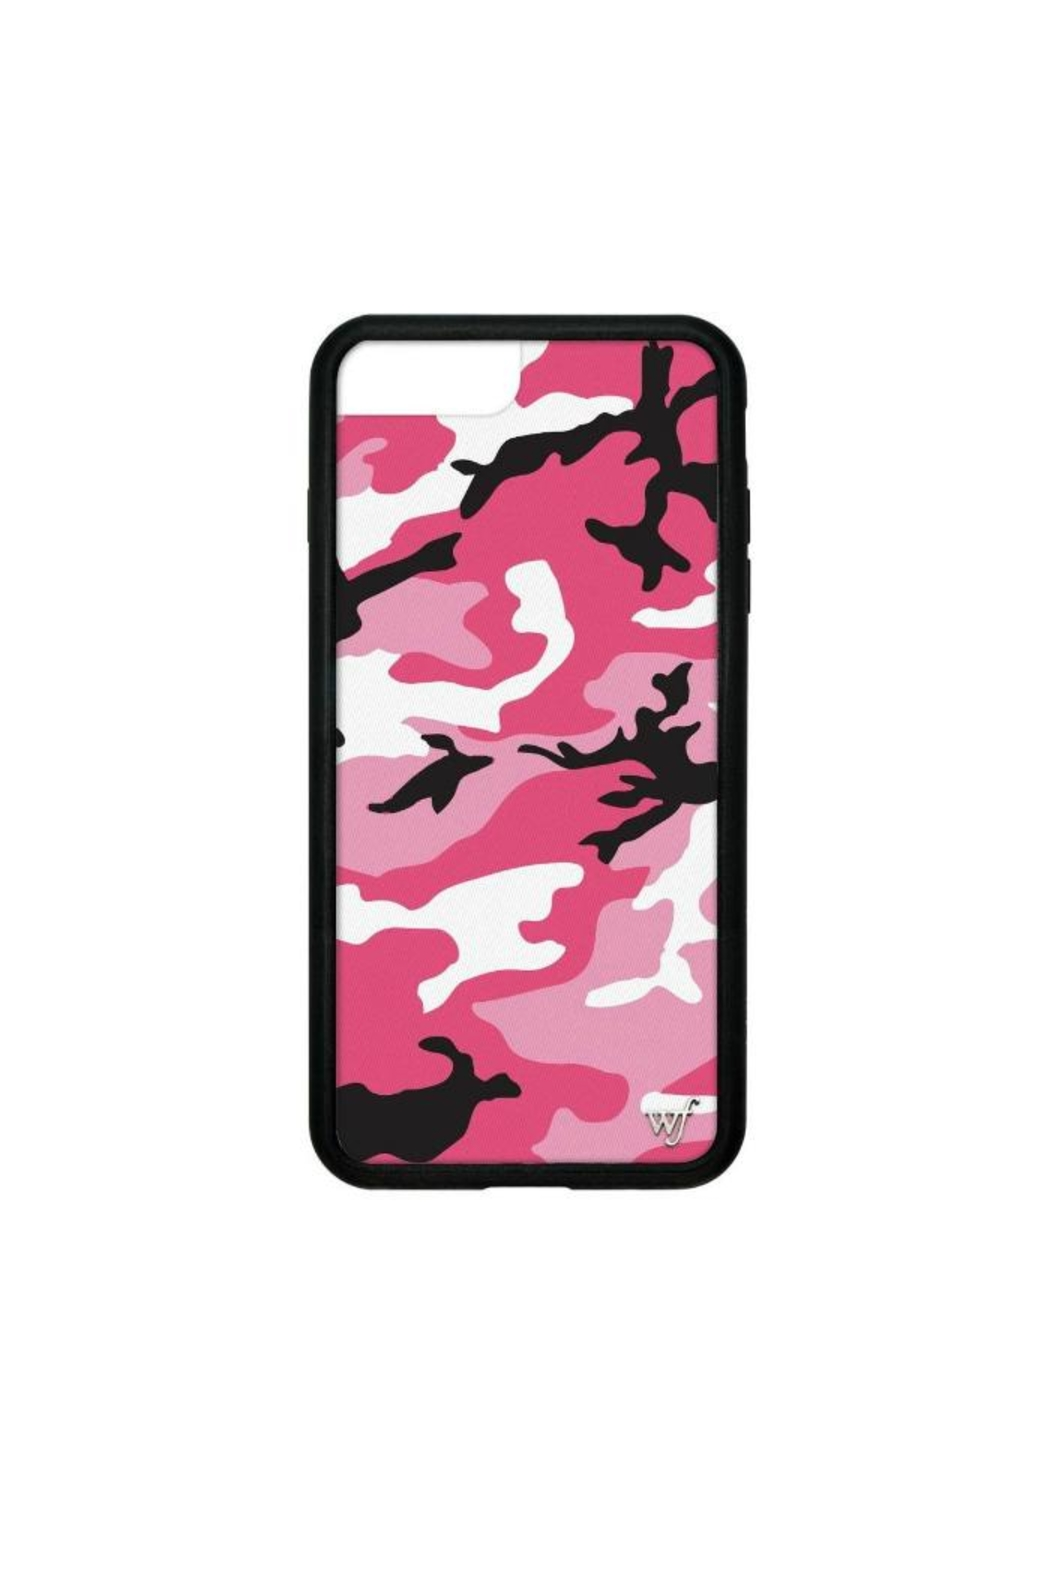 quality design 0a392 d9846 Wildflower Cases Pink Camo Case from New York by Let's Bag It ...